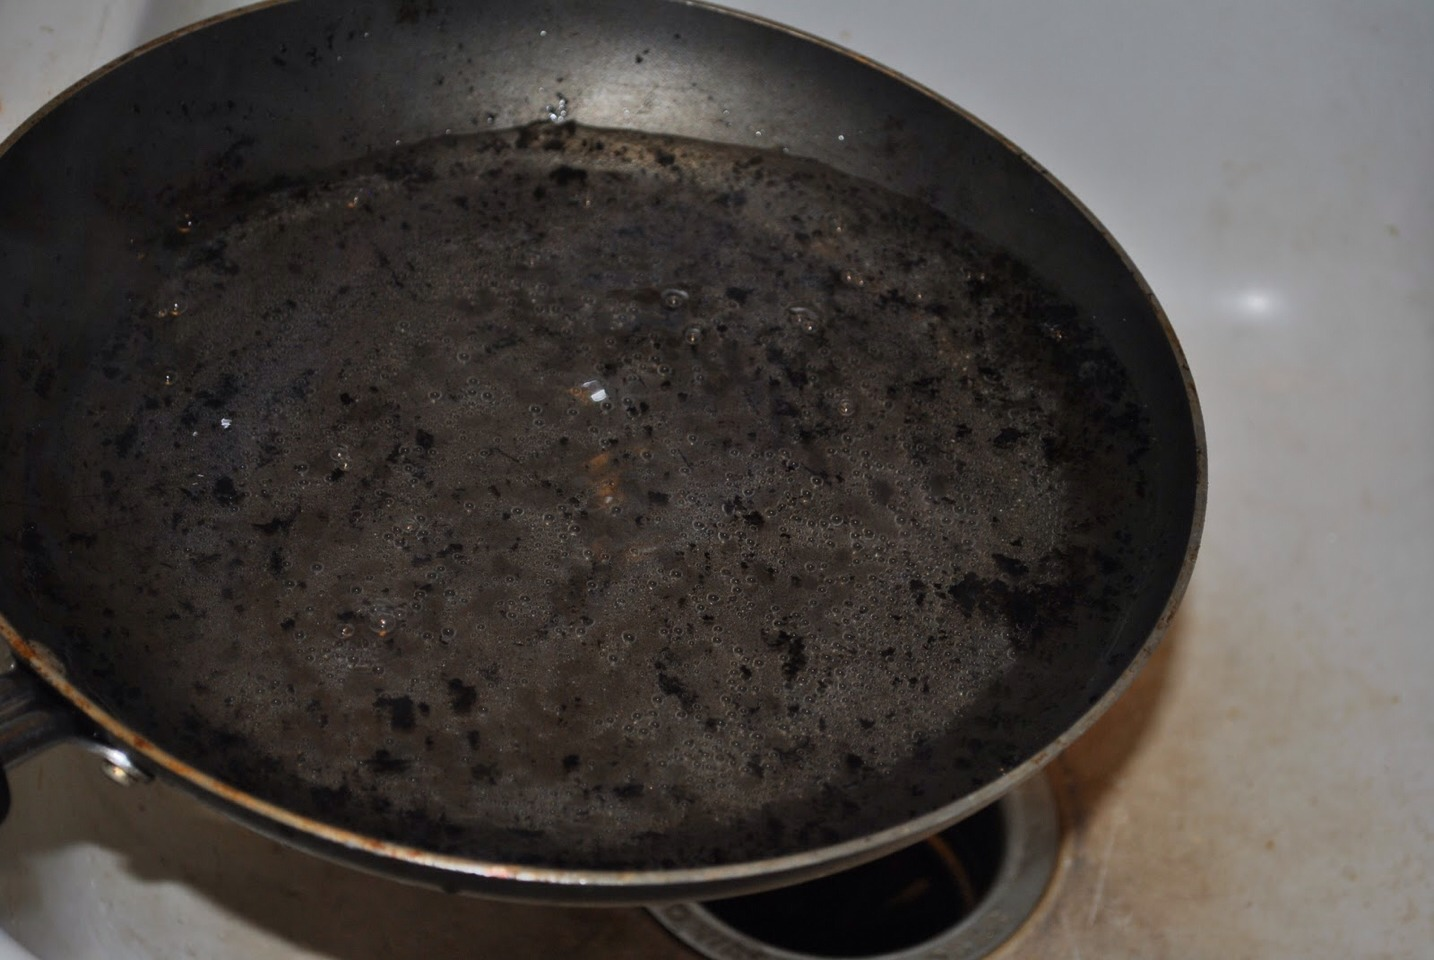 Simply boil some coca-cola in your burnt pan and whala! Very easy!